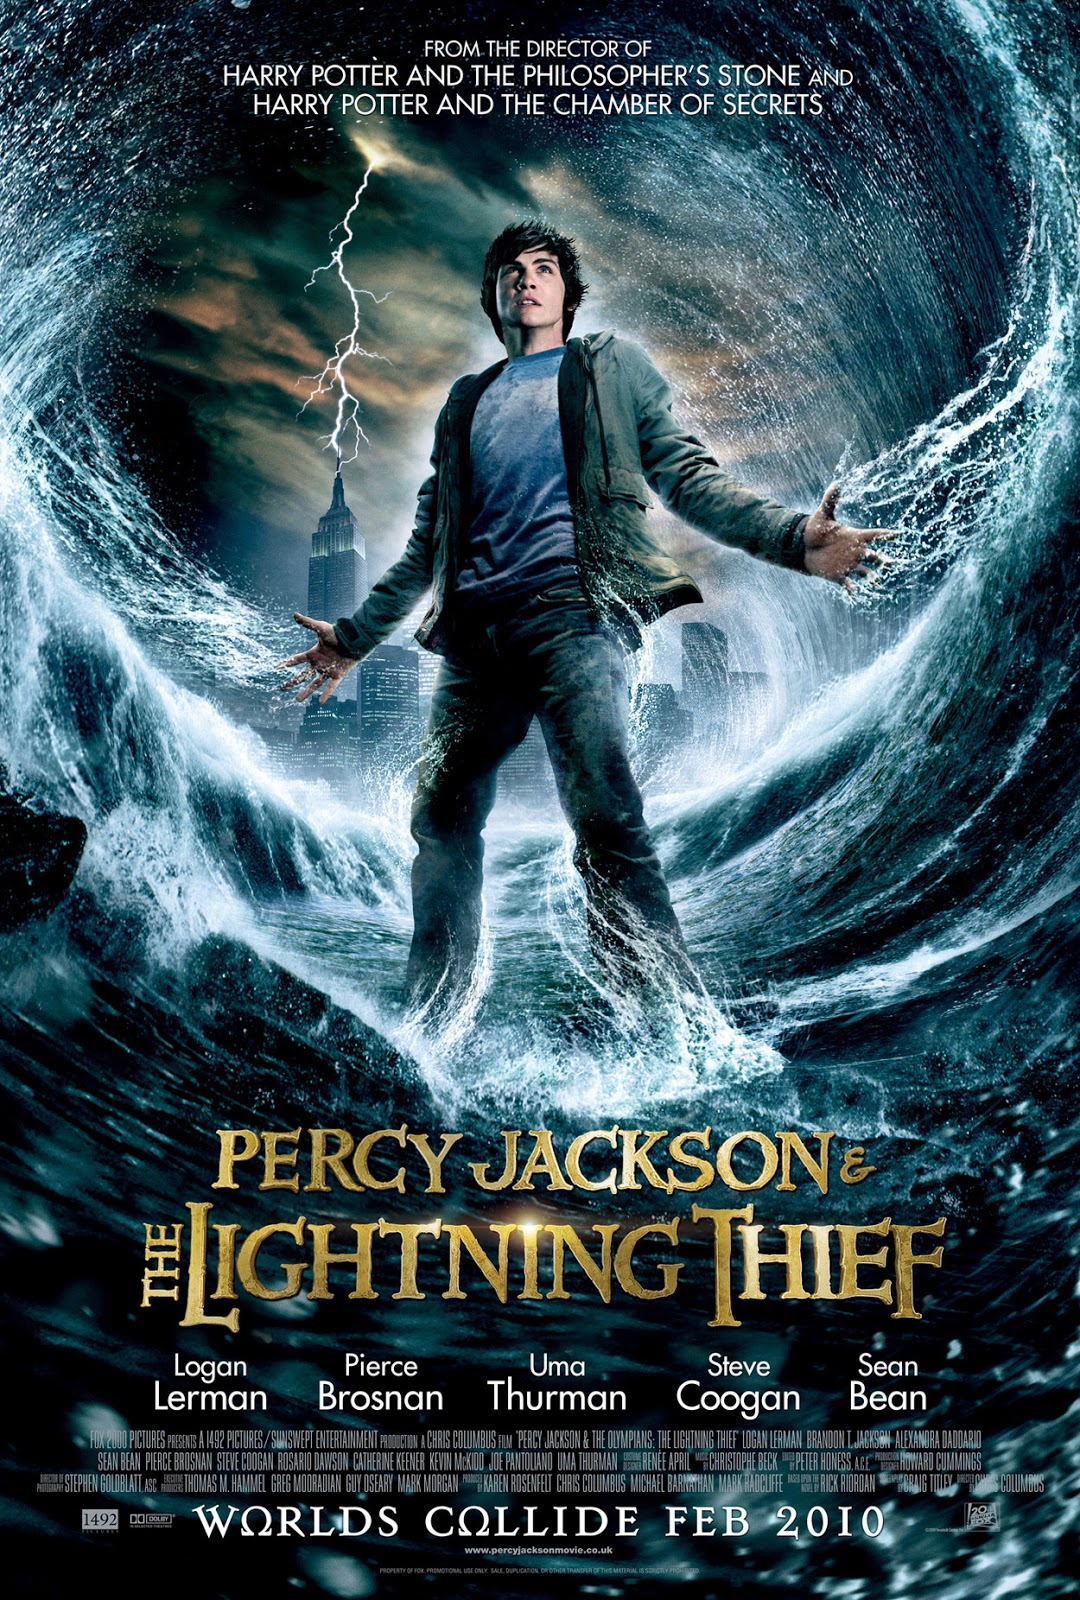 percy jackson and the olympians the lightning thief full movie free download